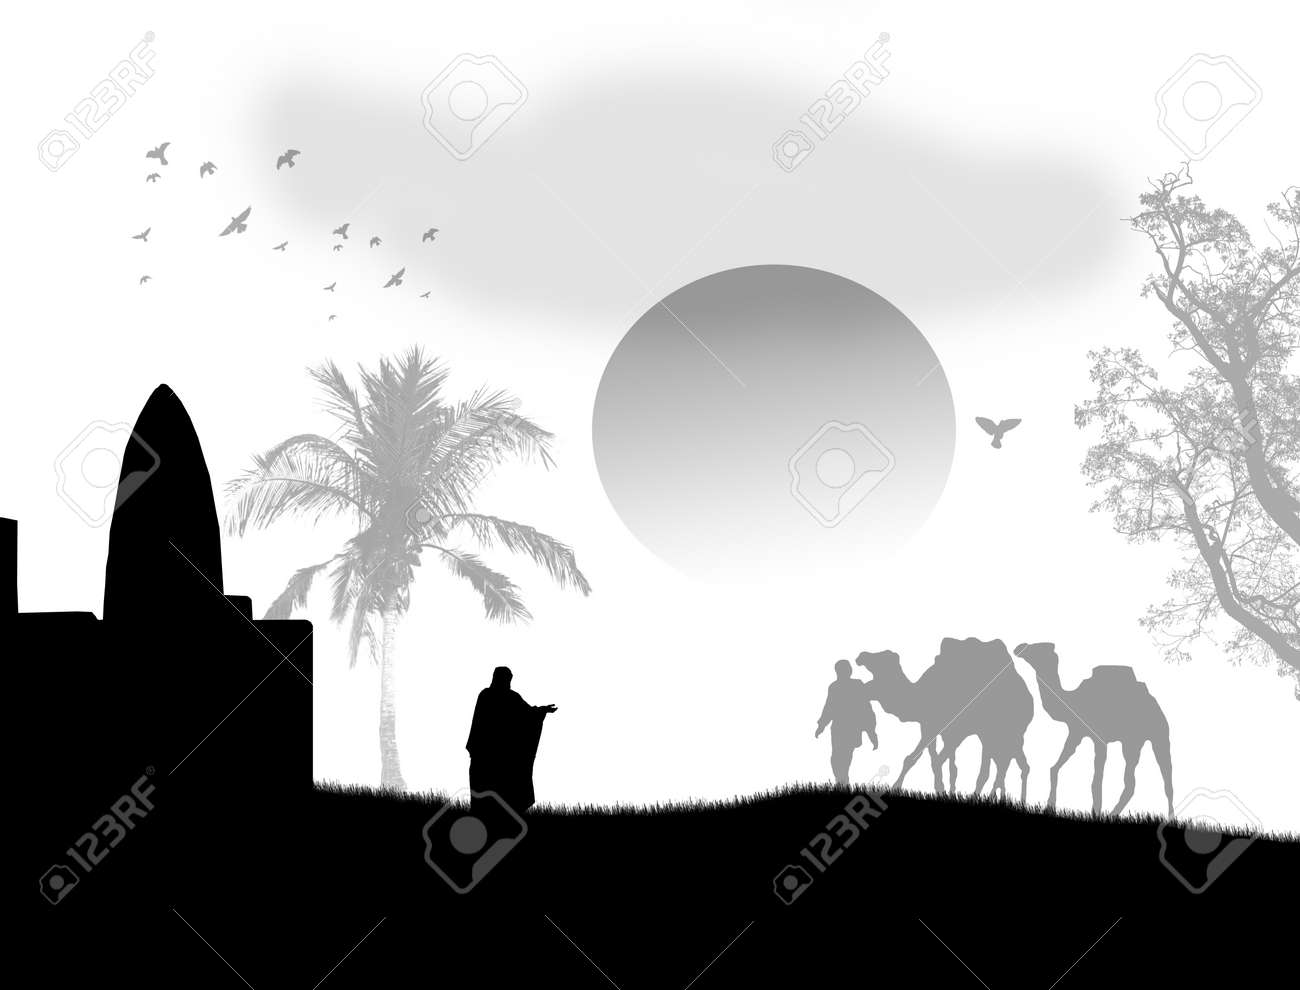 Vector illustration in Sahara with bedouins, mosque and camels, on black and white - 11813116